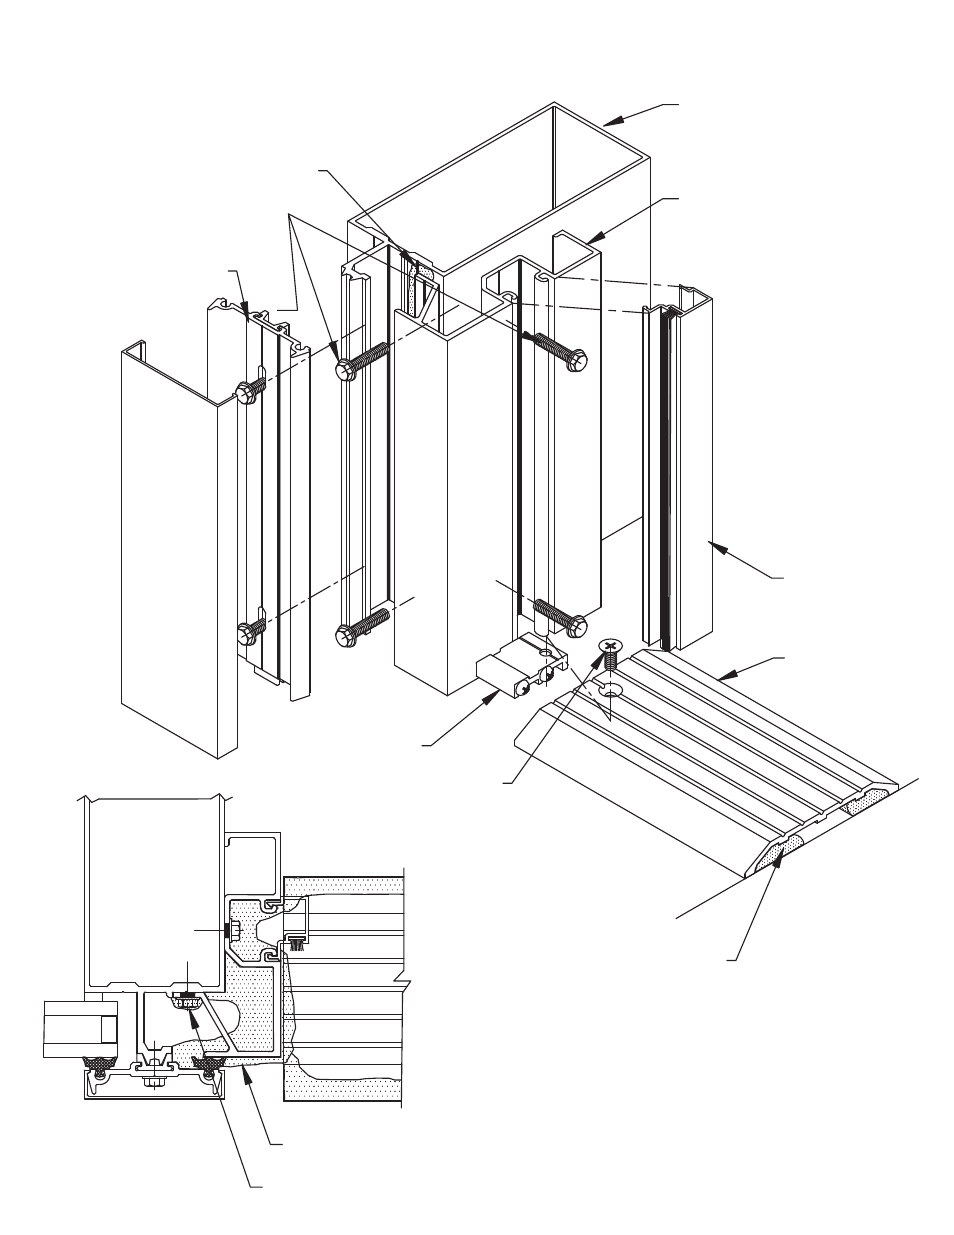 Door-subframe-install, Door frame assembly - sub-frame at threshold ...